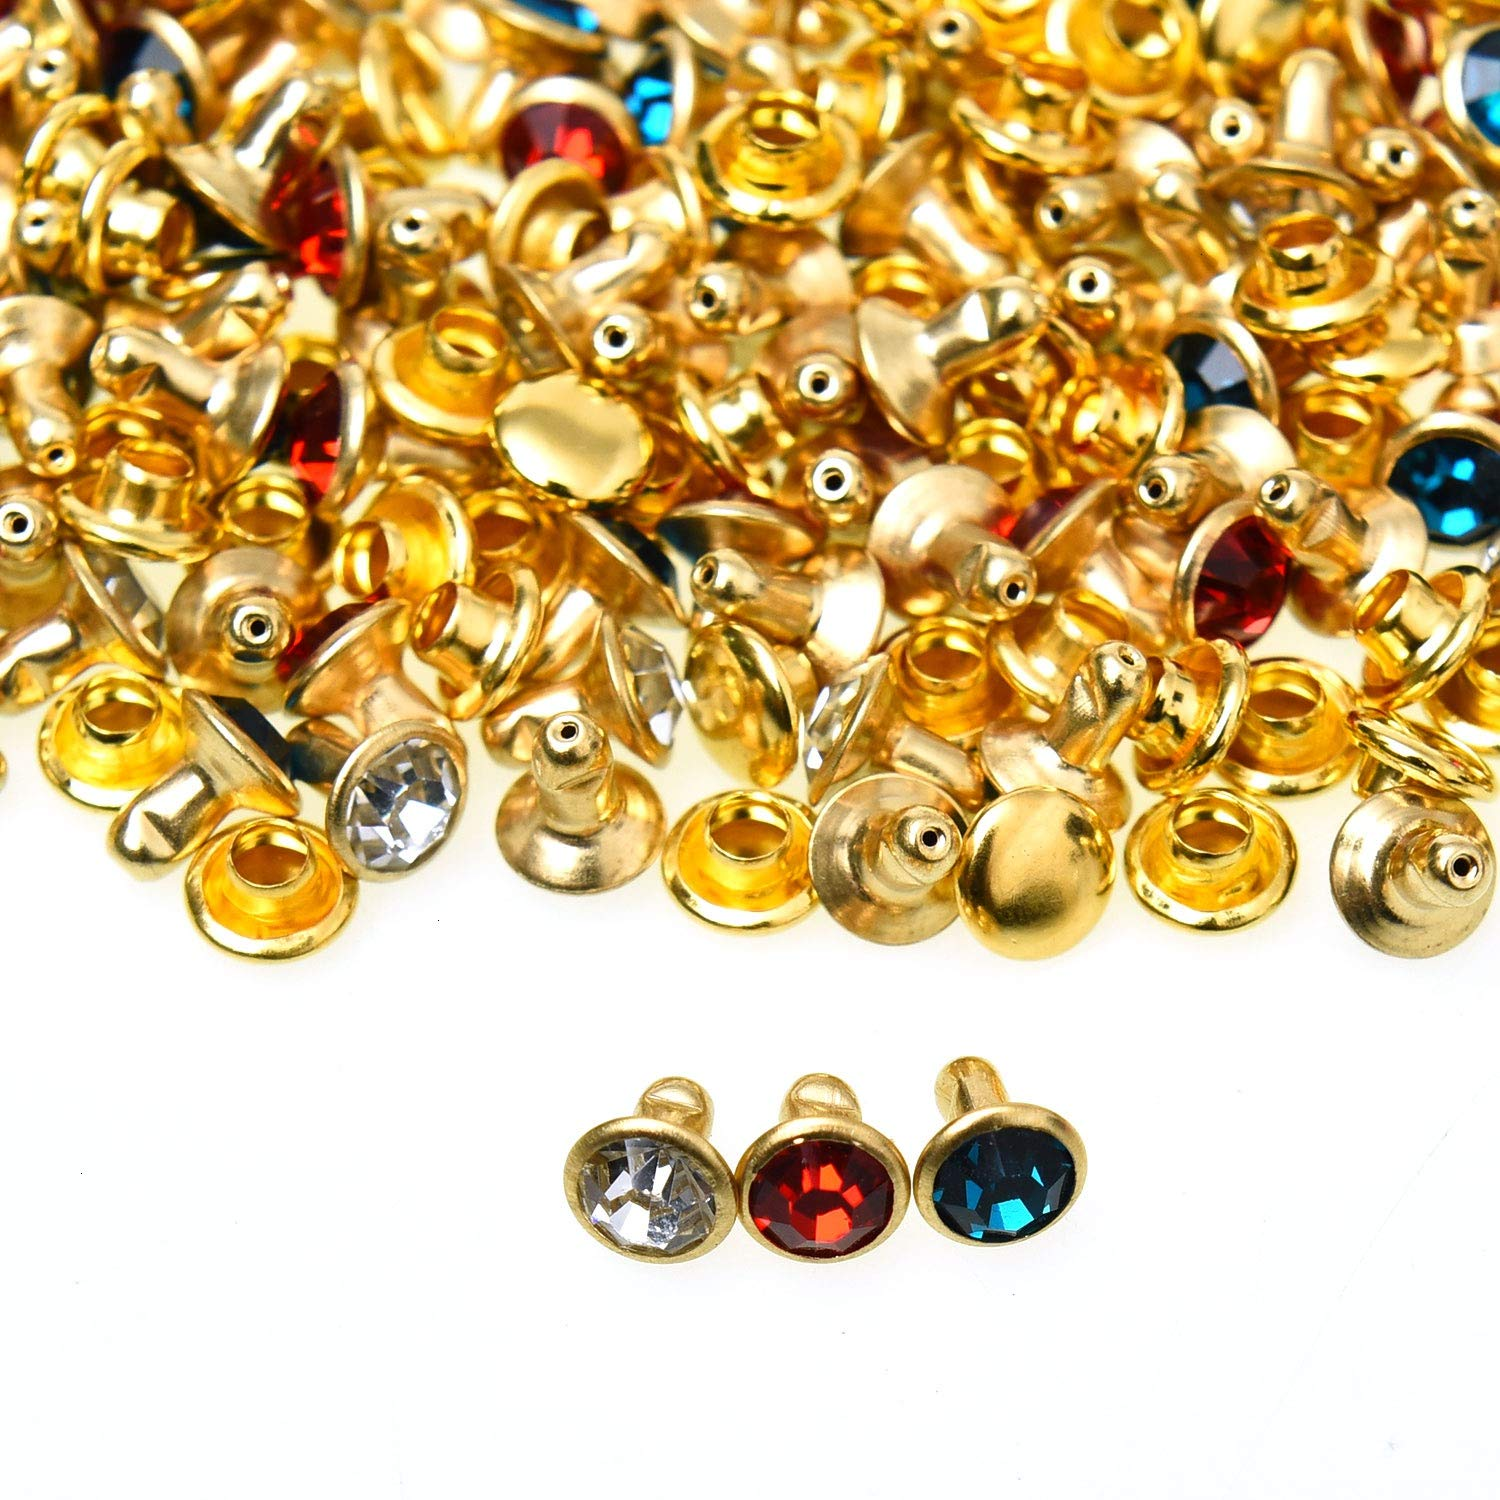 Monrocco 120 Sets Cz Colorful Crystal Rapid Rivets Double Cap for DIY Leathe